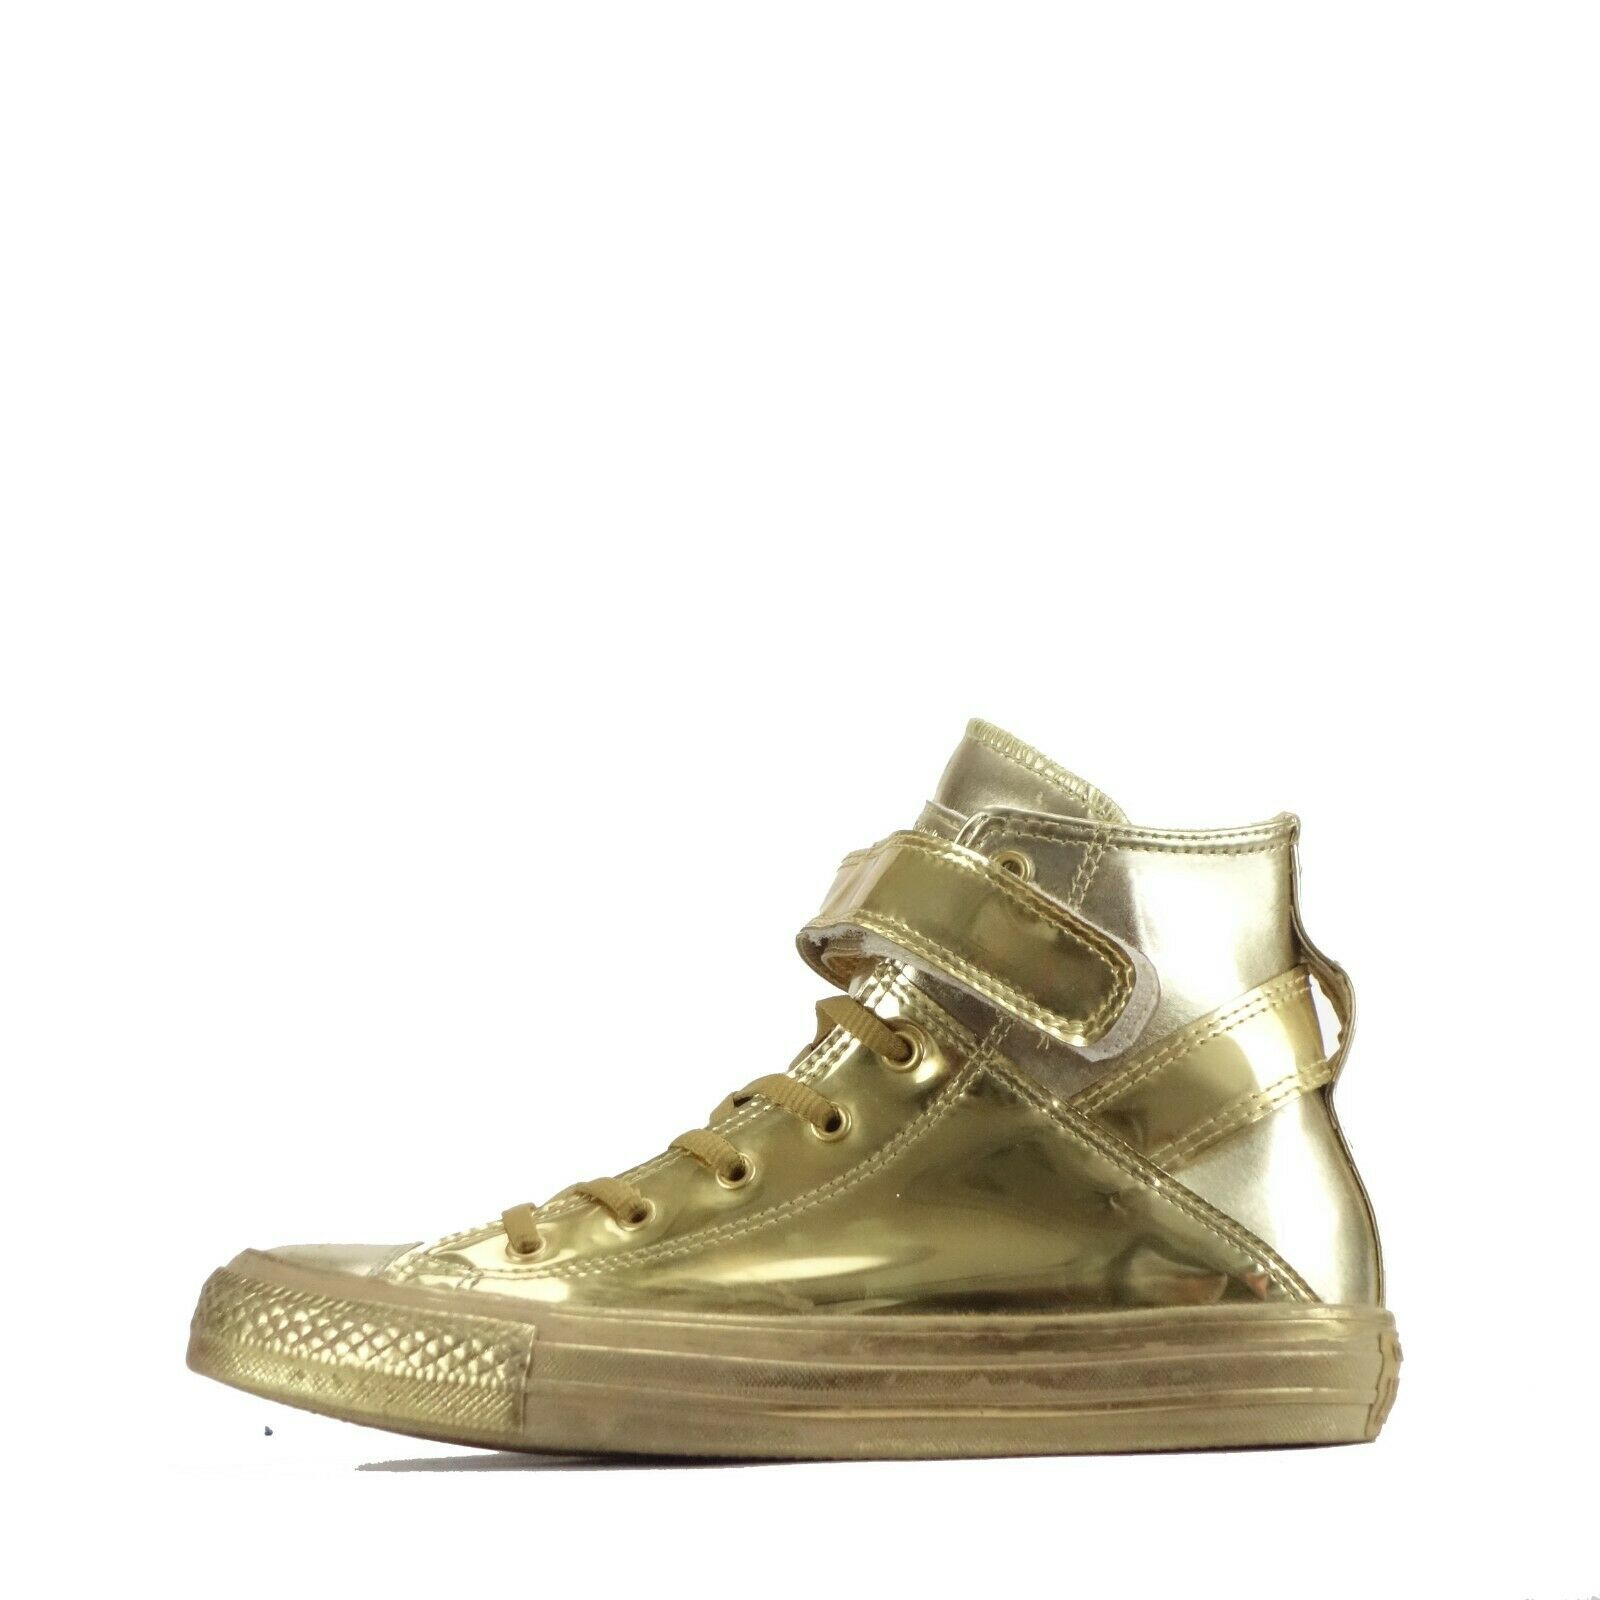 Converse Chuck Taylor All Star Brea Hi Top Women's Trainers Shoes Gold UK 4.5